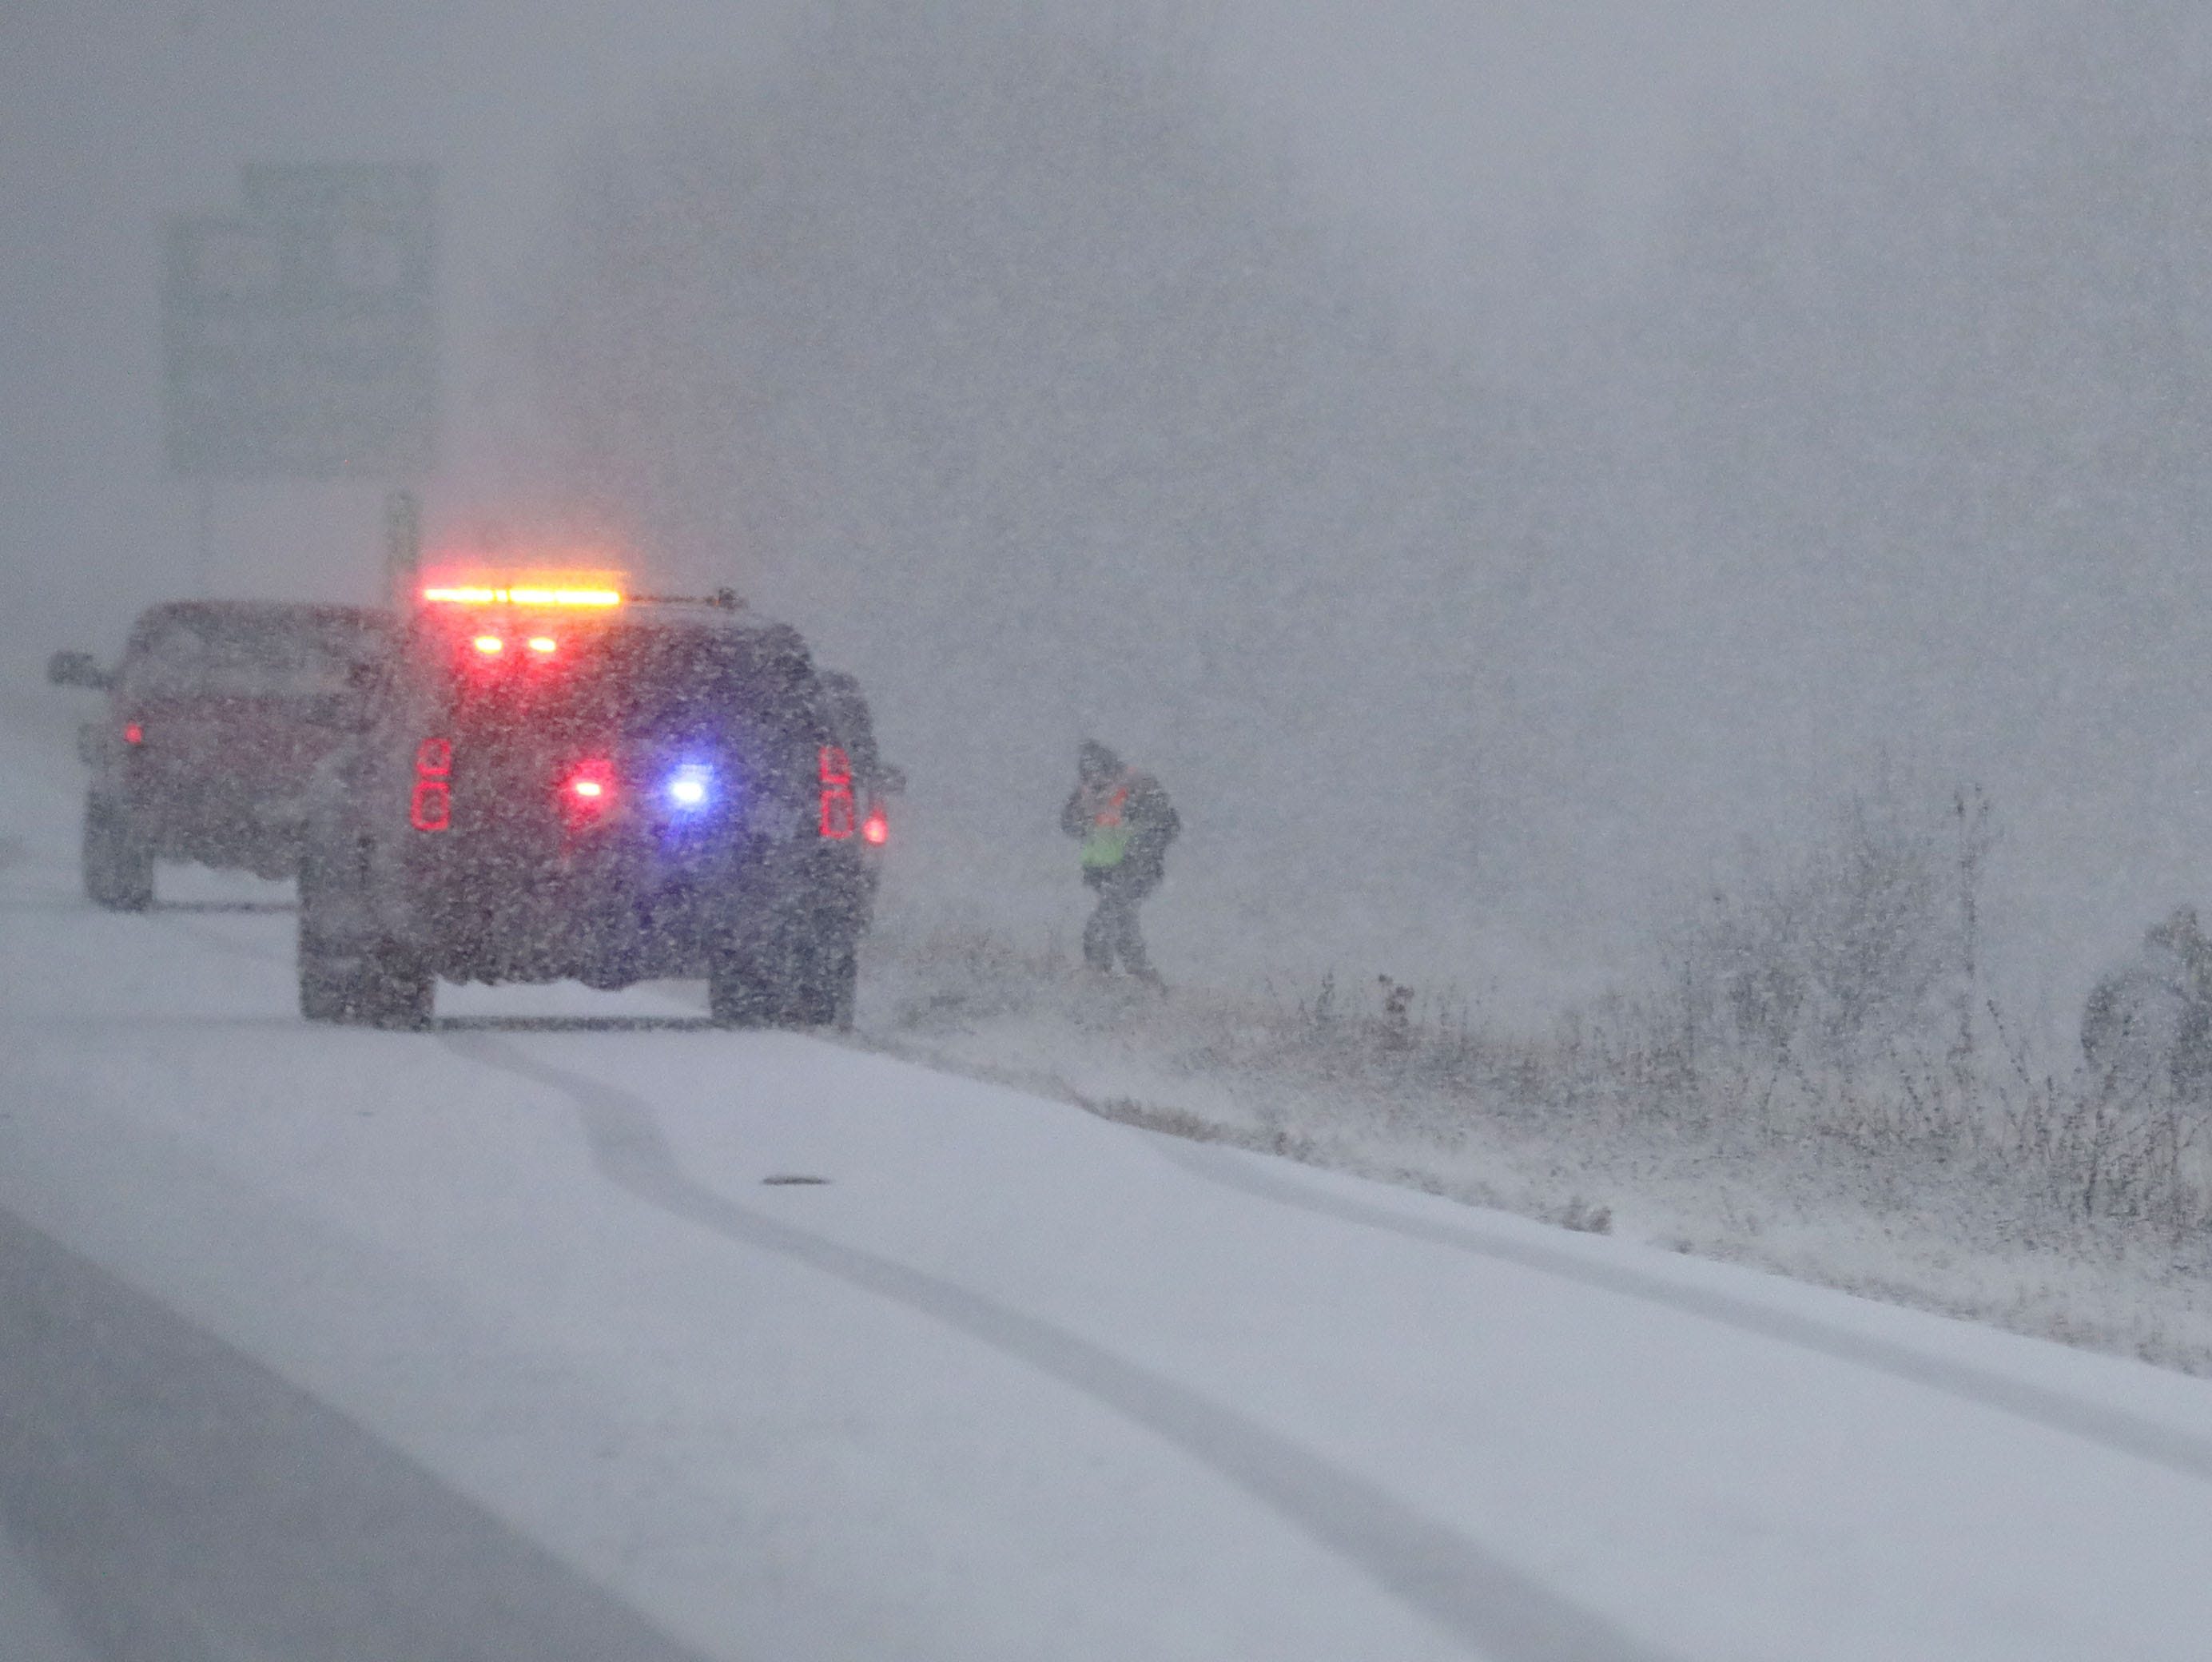 Multiple accidents and spinouts were seen on I-43 like this one near Sheboygan before the Green Bay Packers game against the Arizona Cardinals at Lambeau Field in Green Bay, Wis. on Sunday, December 2, 2018.